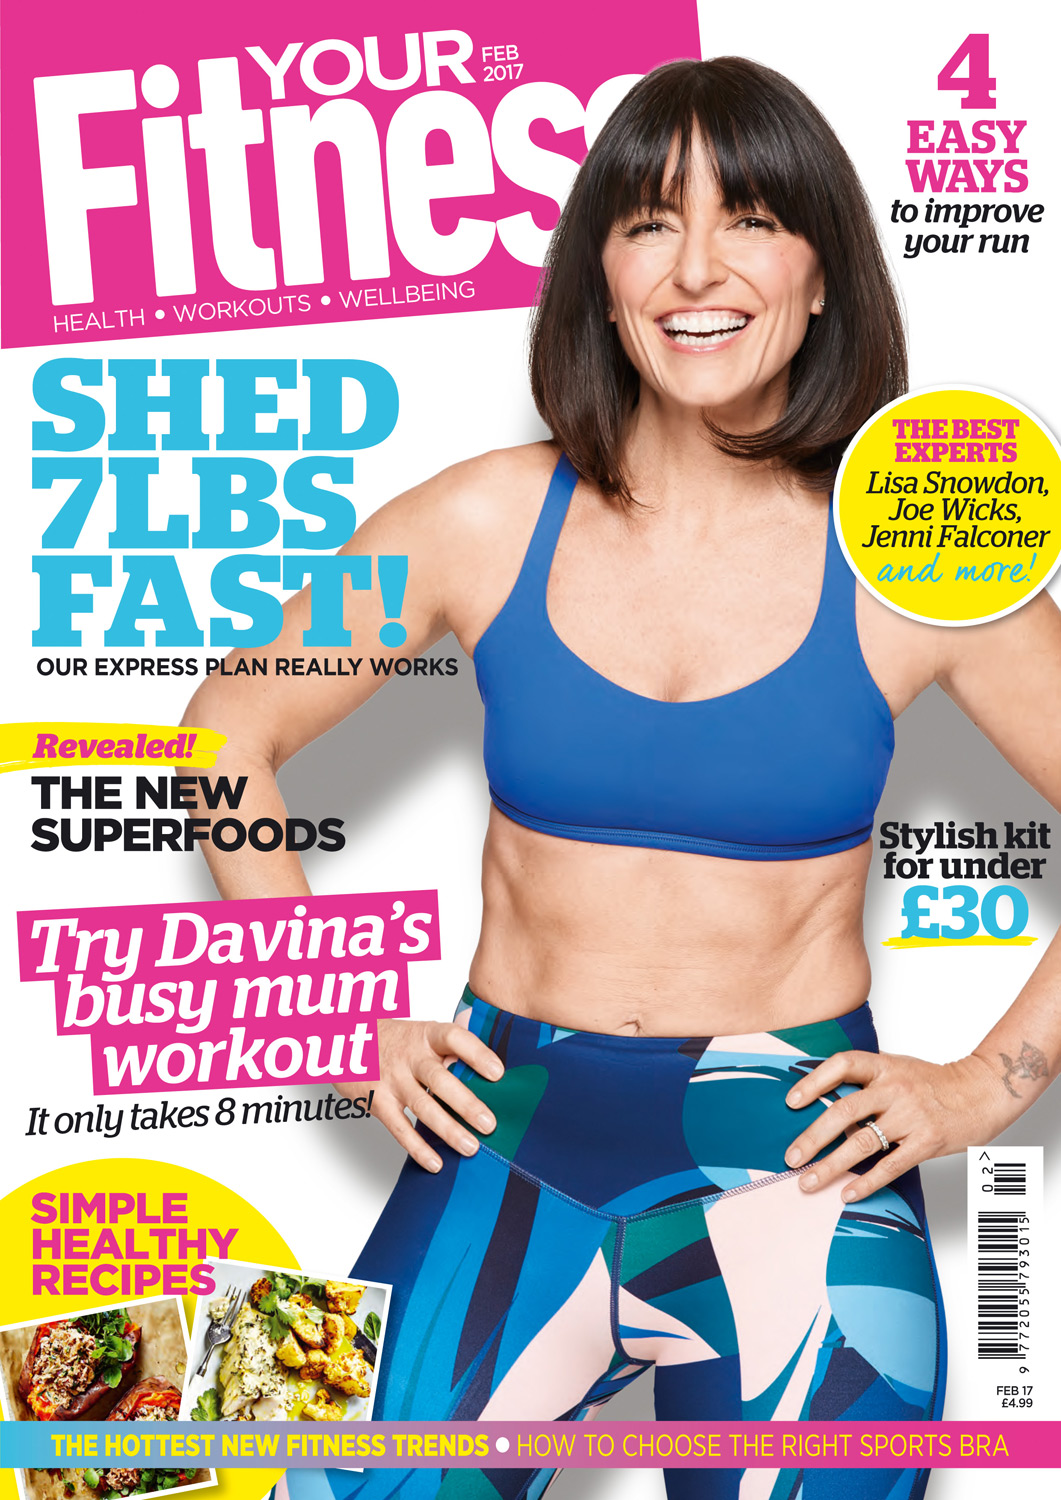 Davina McCall cover for Your Fitness magazine, photographed by Oliver Suckling at CliQQ